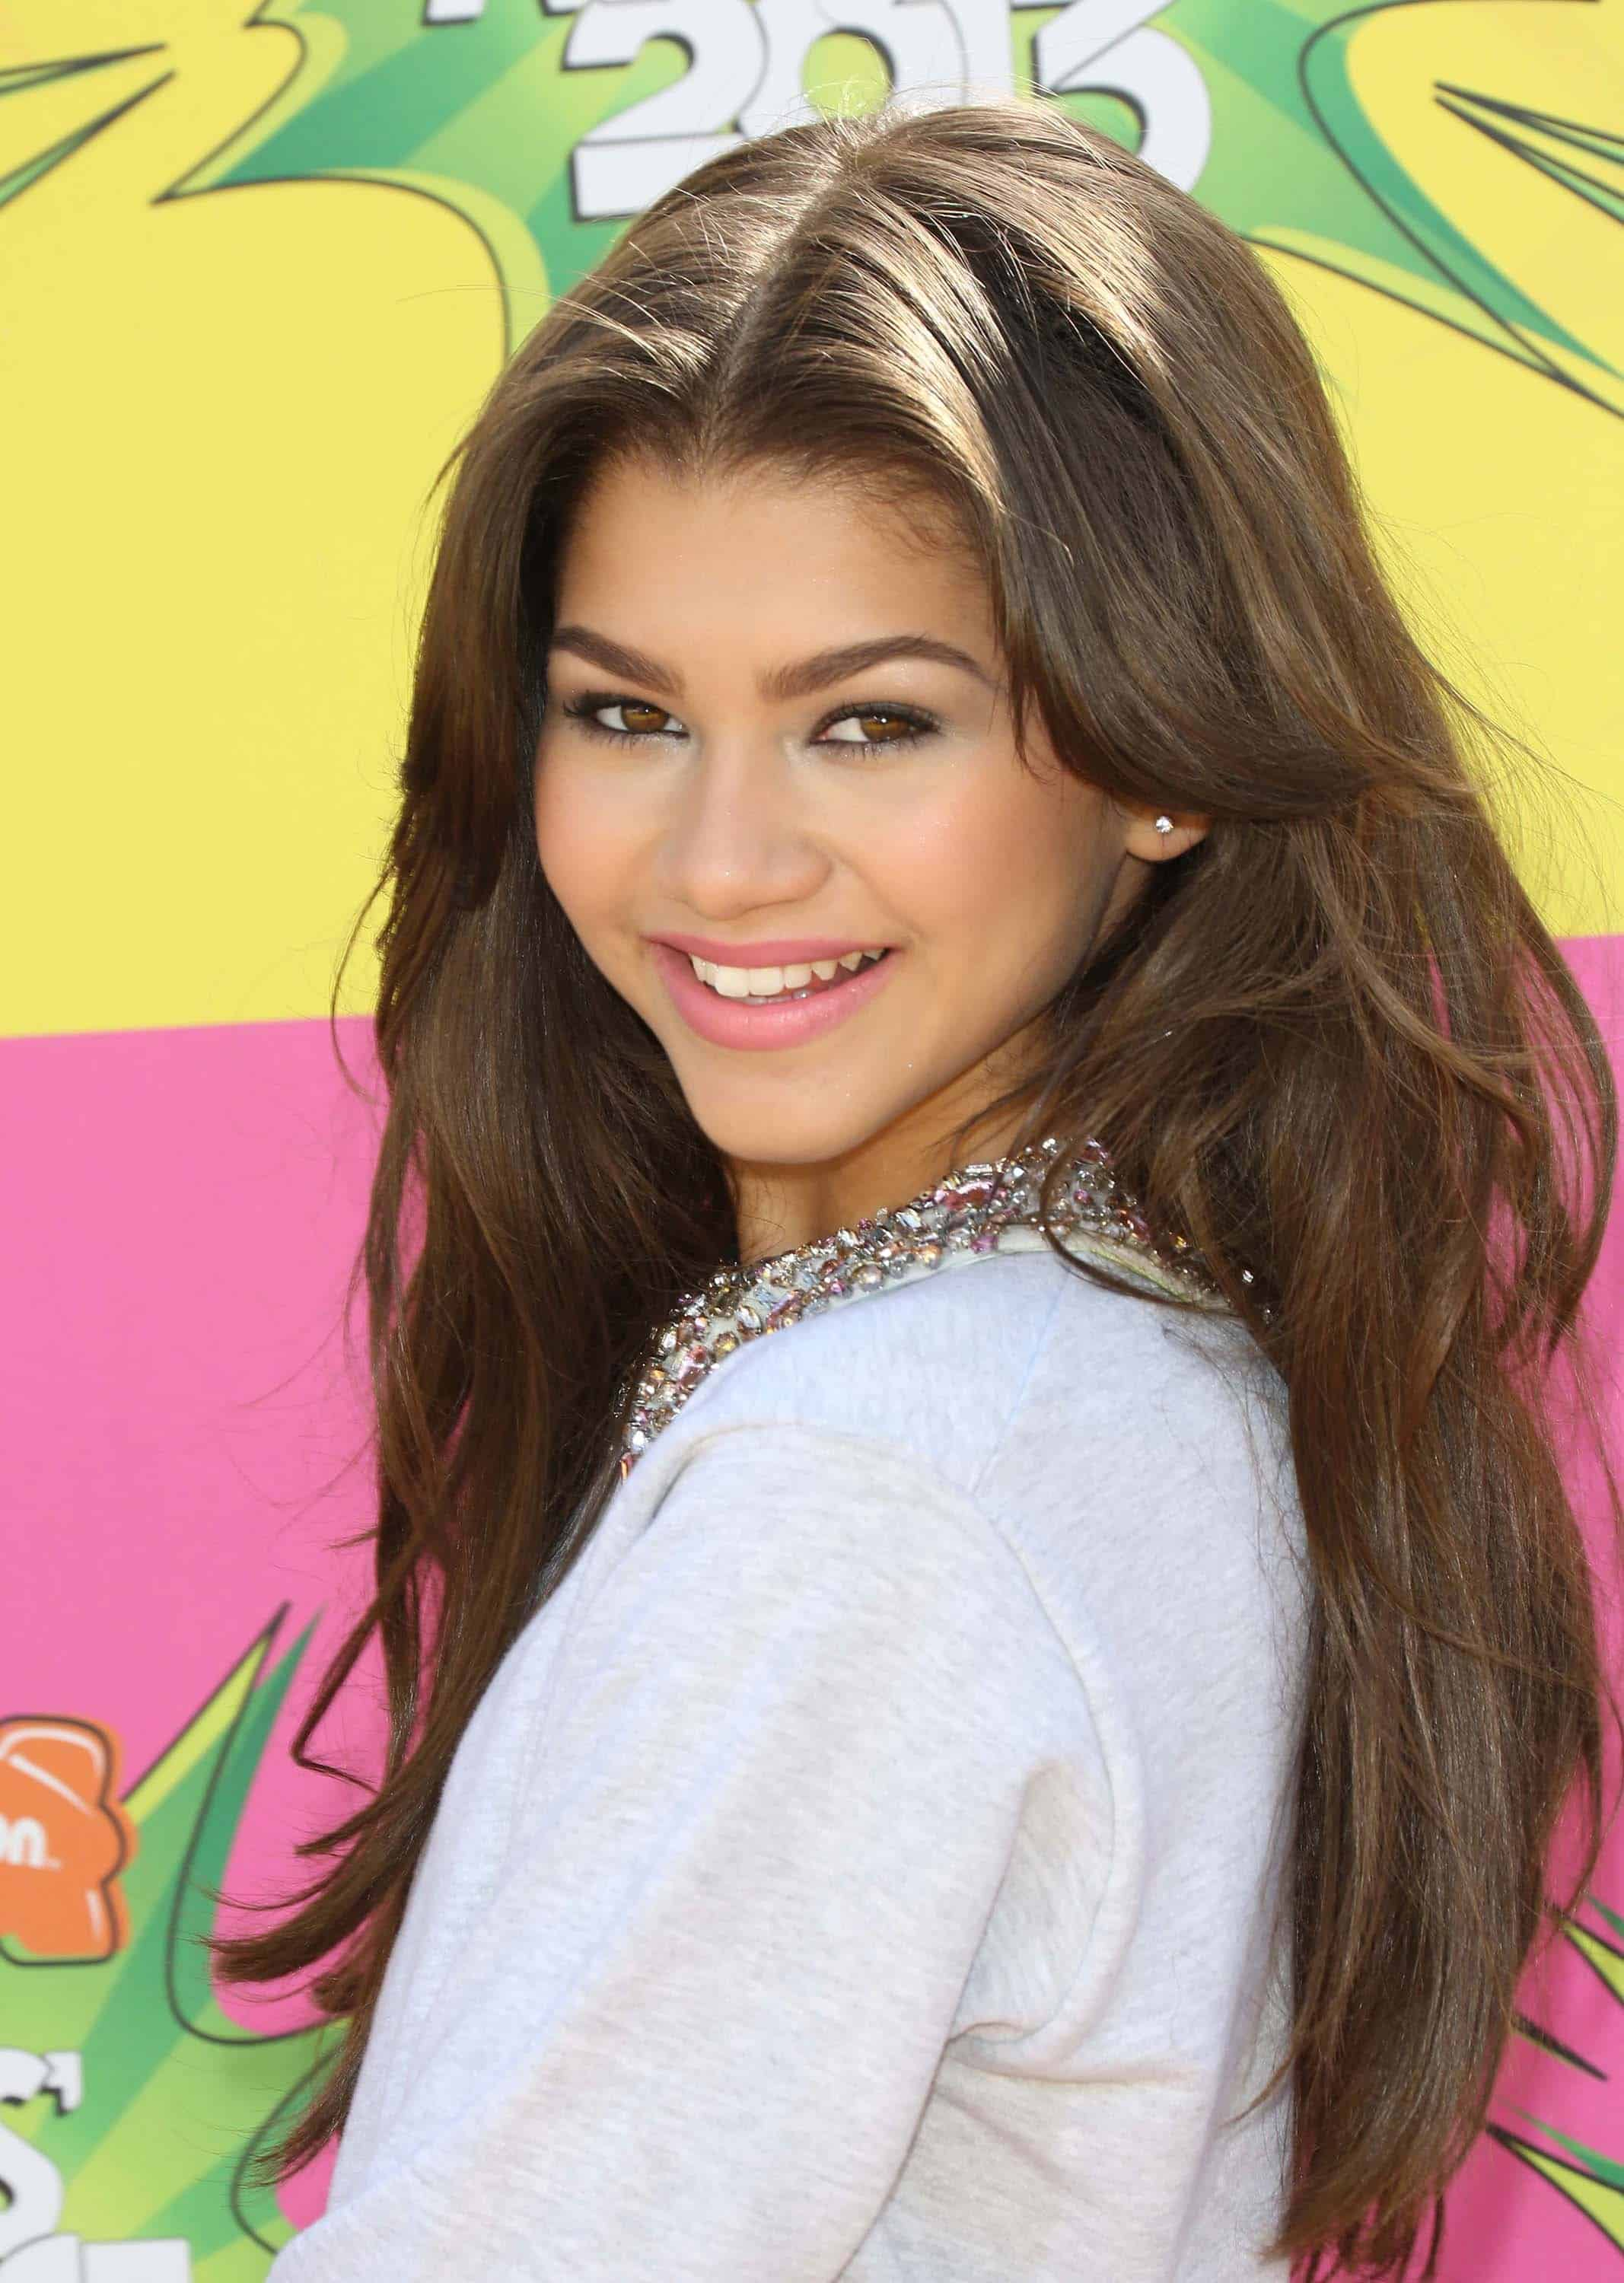 DWTS Teen Competitor Zendaya Coleman Is Between Sexy And A